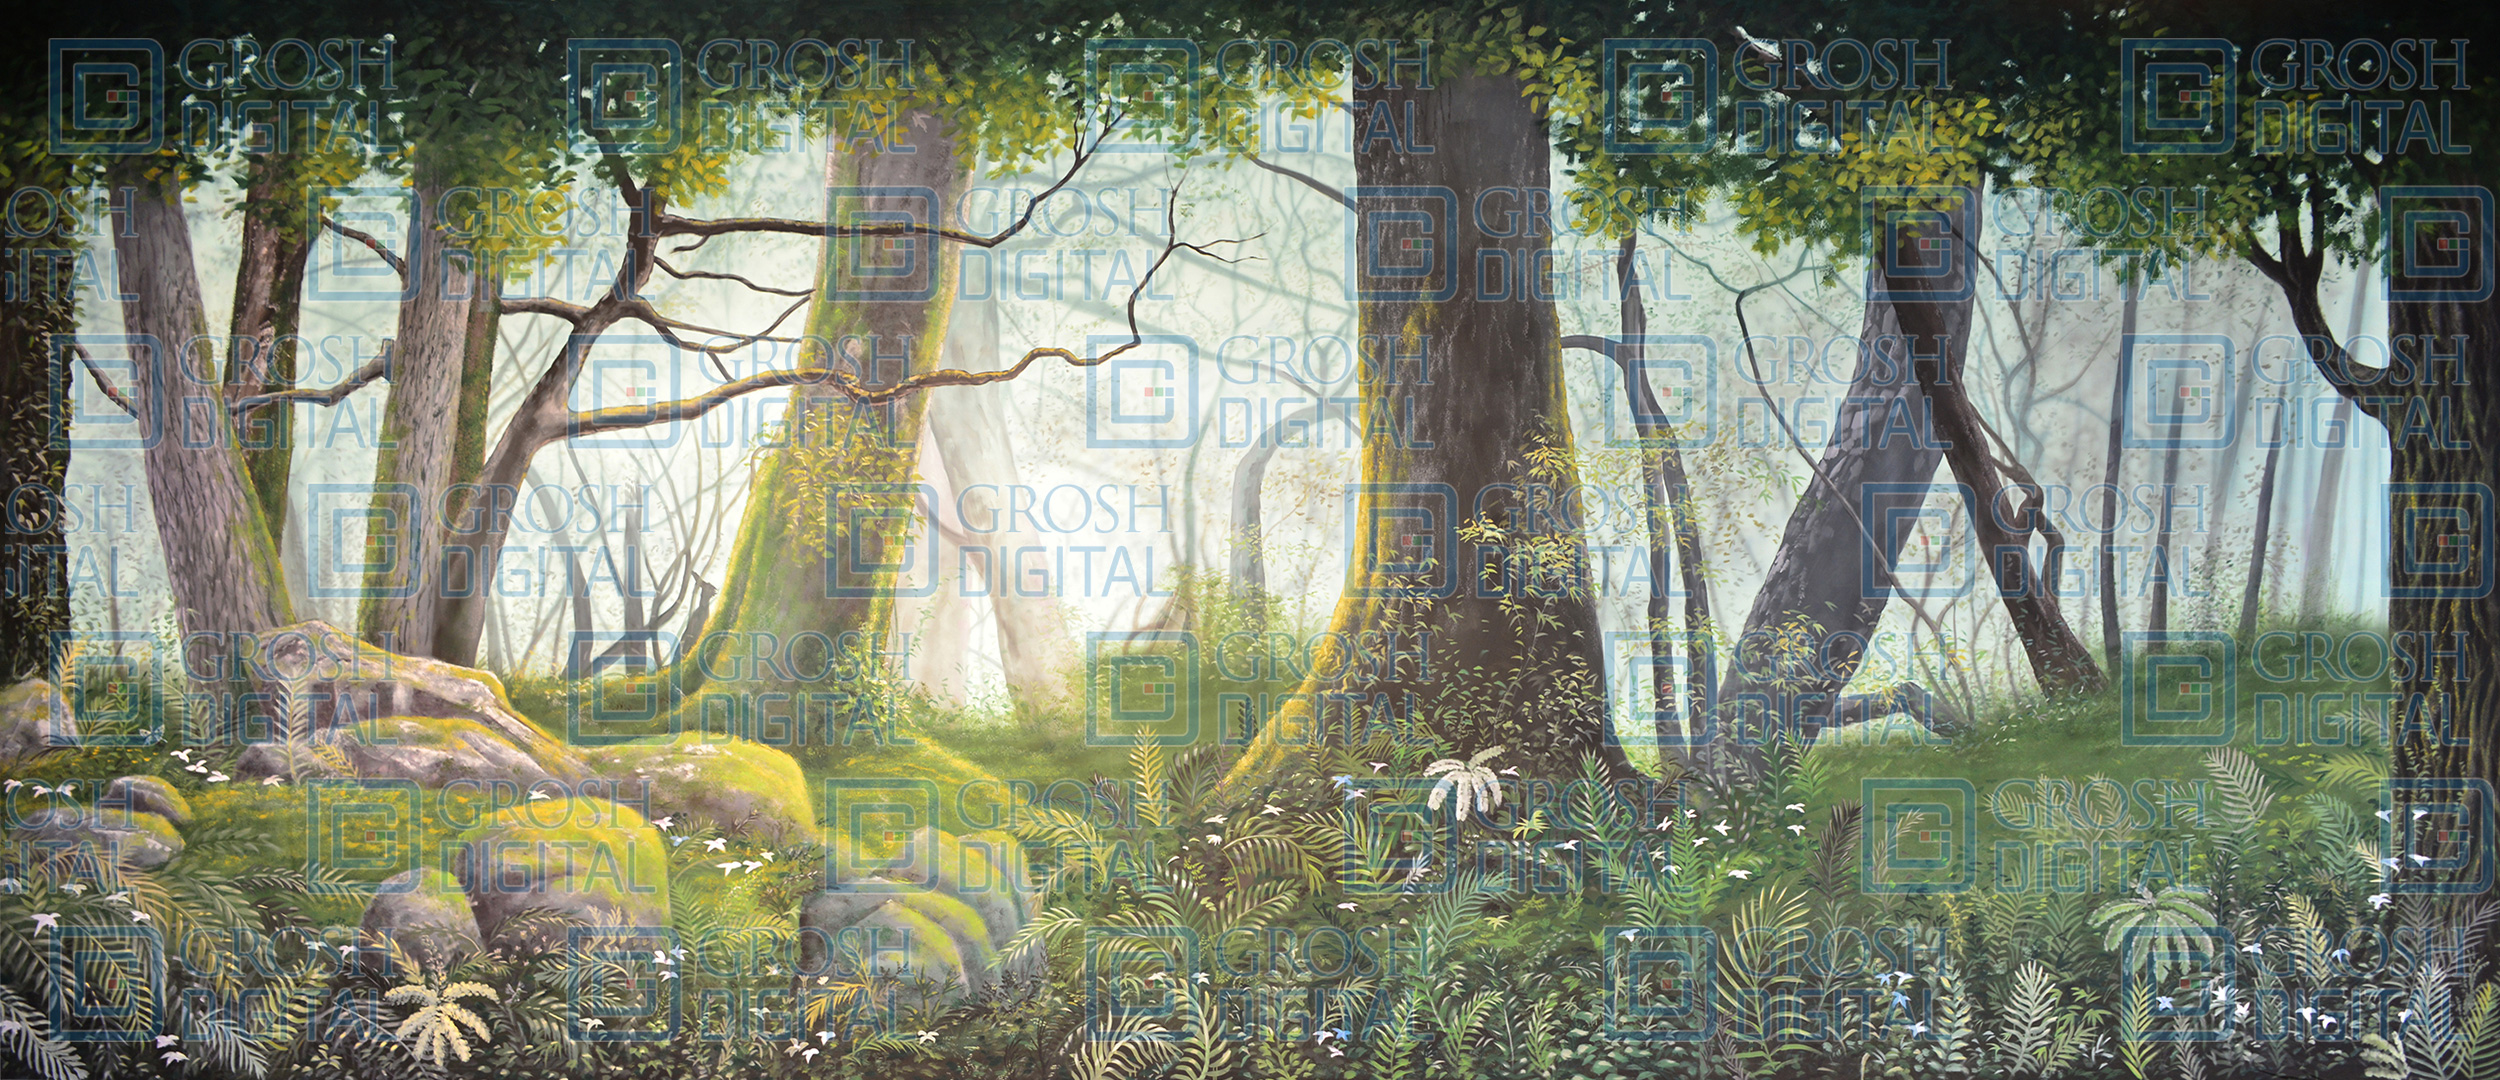 Mossy Forest Projected Backdrop for Addams Family, Alice in Wonderland, Beauty and the Beast, Big Fish, Brigadoon, Cinderella, Forest, Giselle, Into the Woods, Lion King, Madagascar, Peter Pan, Seven Brides for Seven Brothers, Shrek, Sleeping Beauty, Wizard of Oz